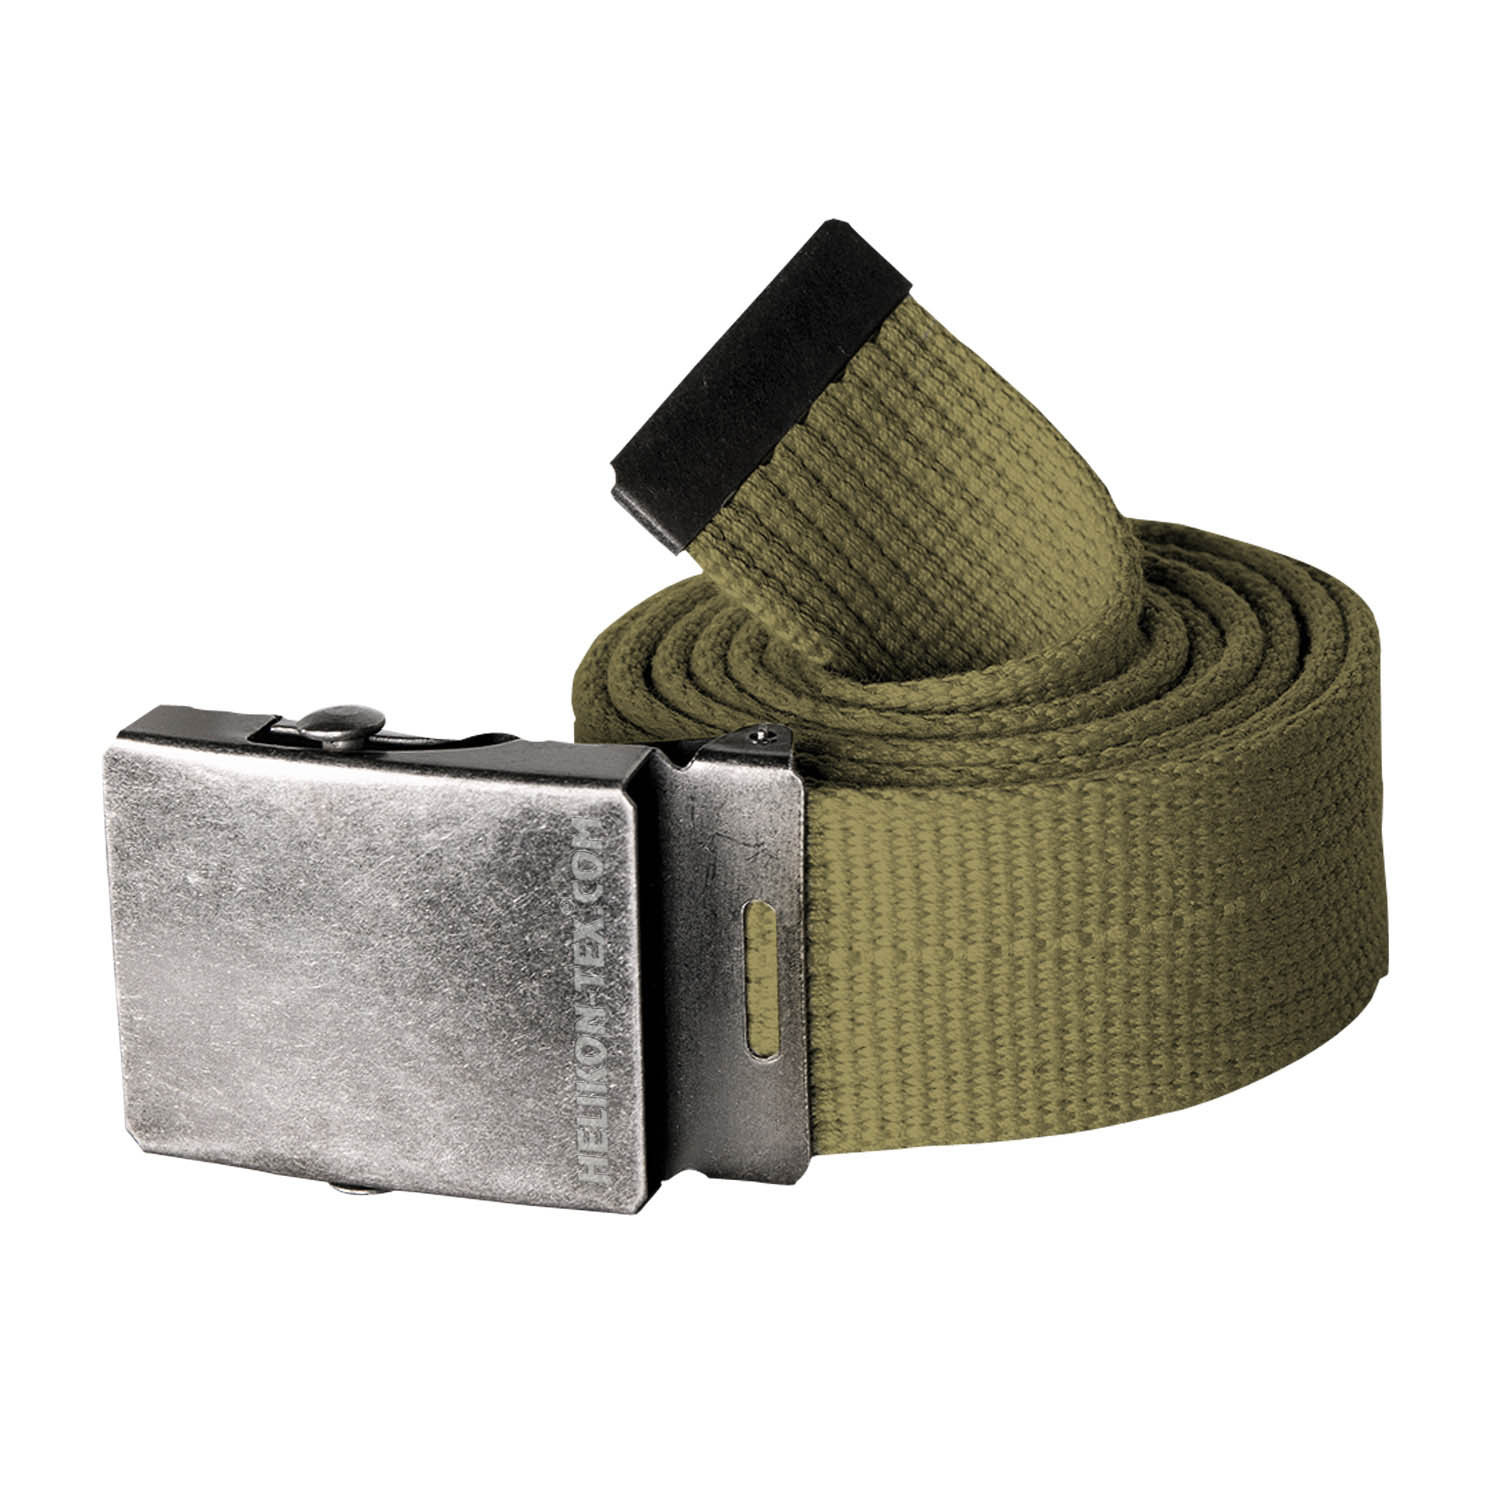 Ремень брючный Helikon-Tex Canvas Belt PS-CAN-CO